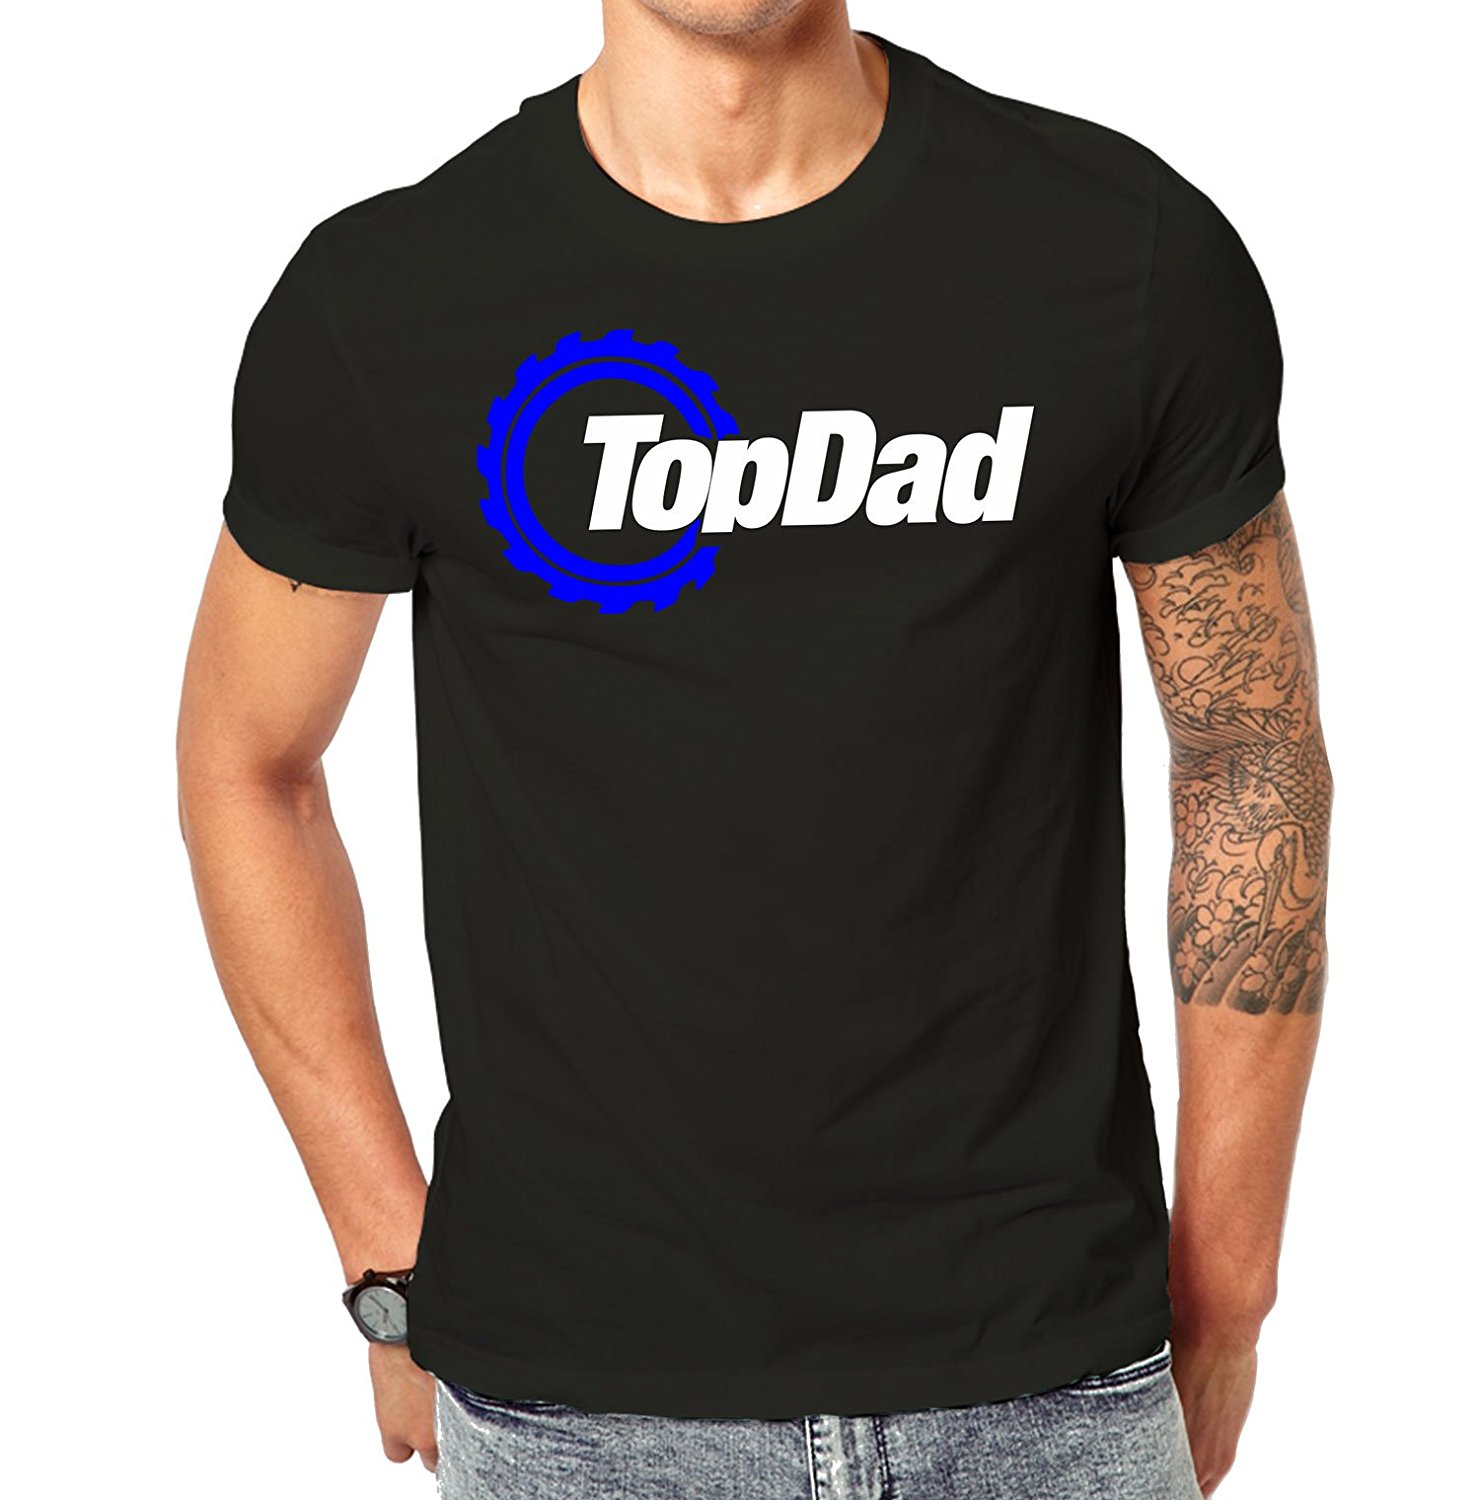 2018 Fashion t-shirt Top Dad Motor Sporter Racer Fathers Days T-Shirt Top Gear